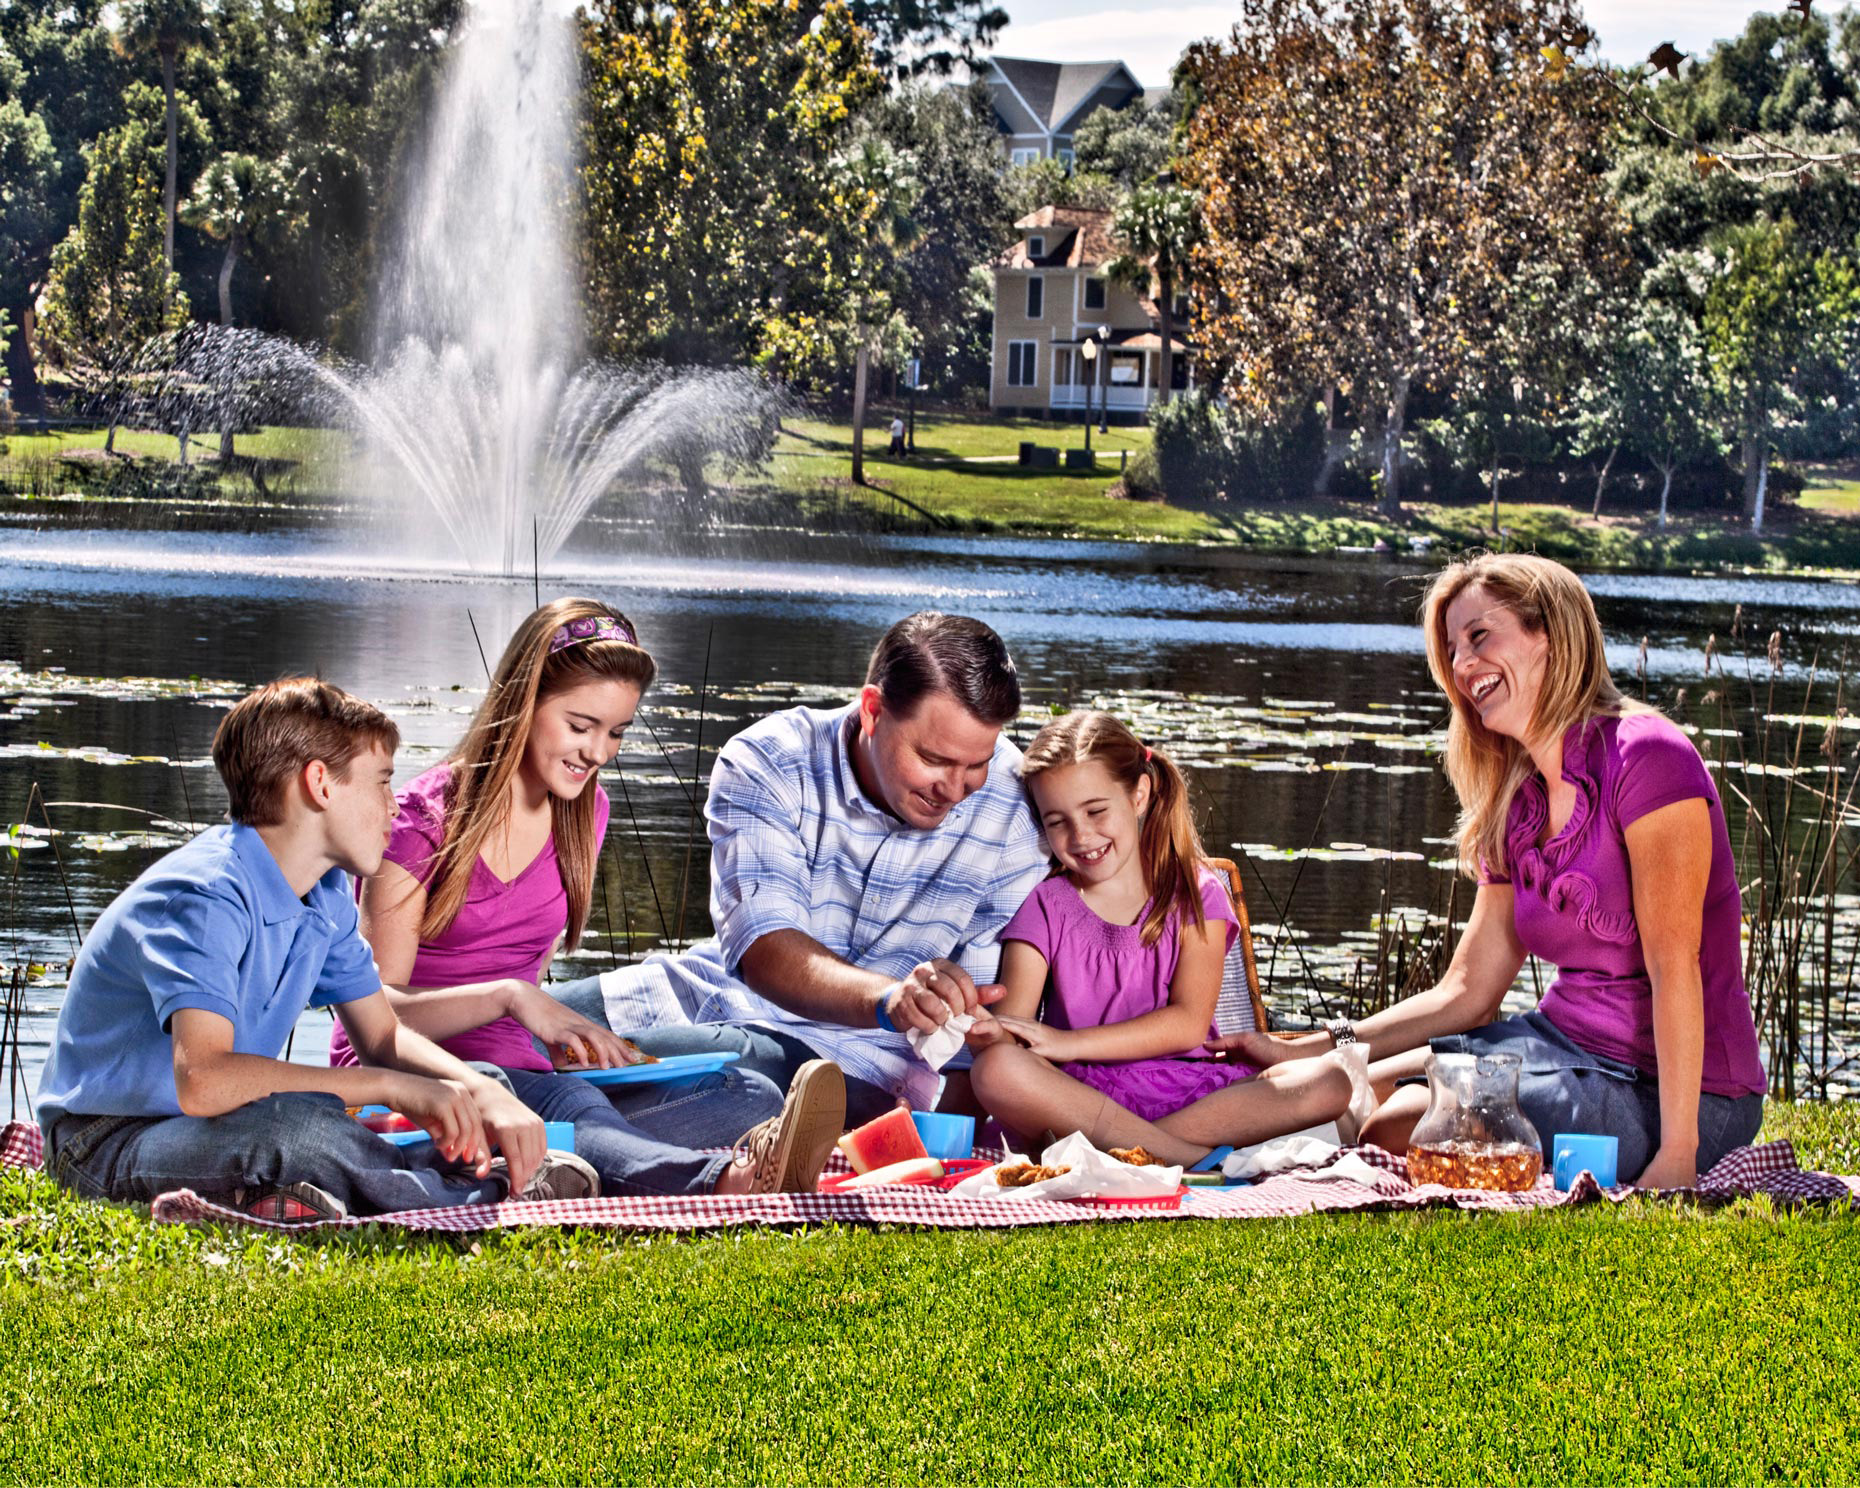 Lifestyle Photographer | Photography of a Family on a Picnic